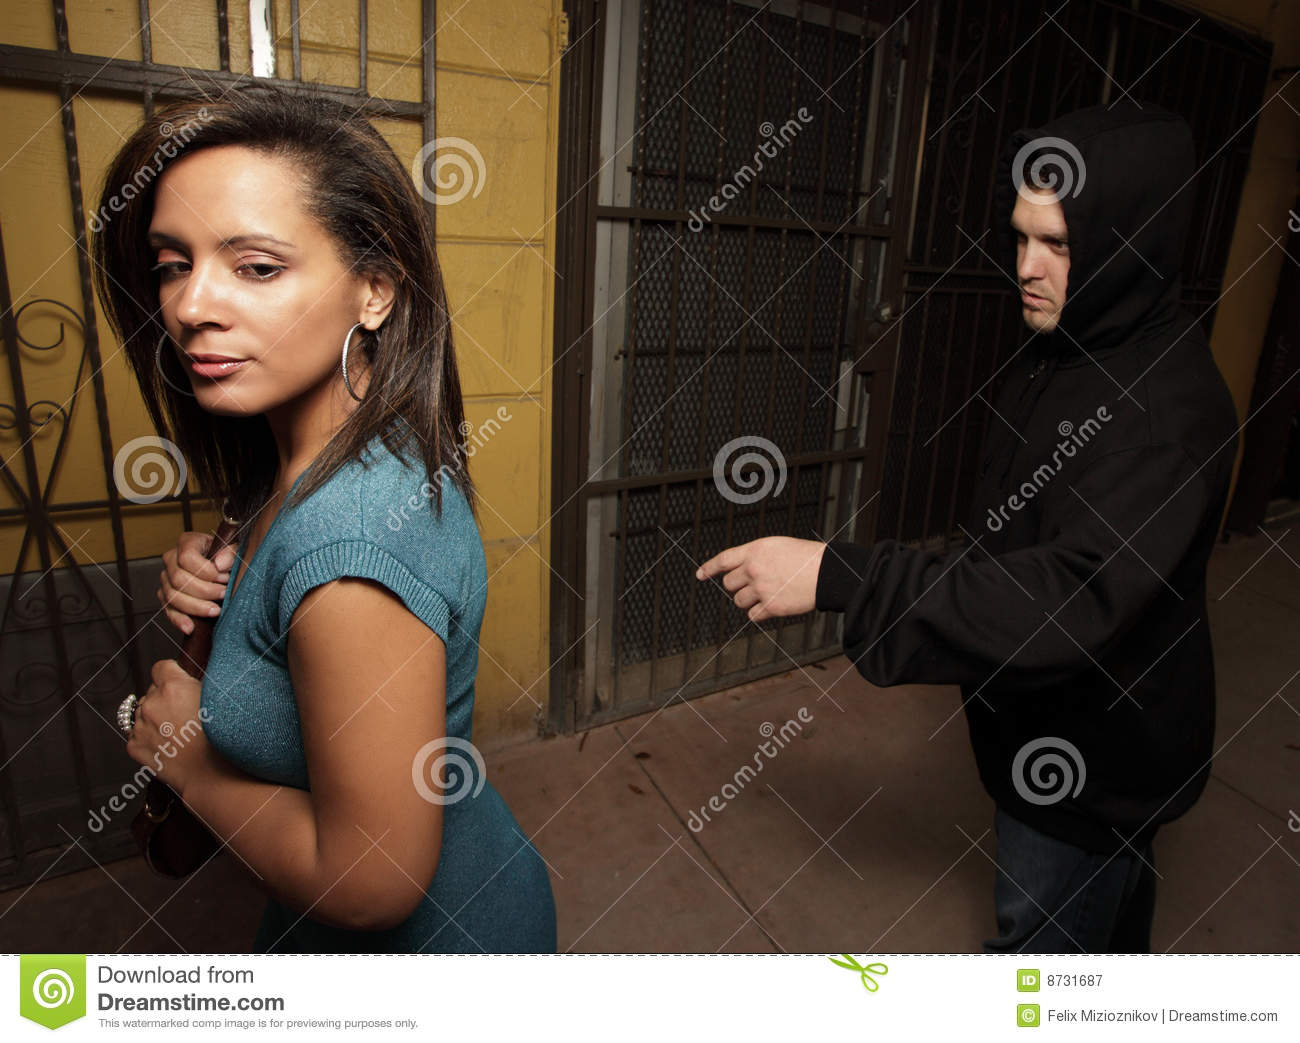 Man Stalking Woman Stock Photos, Images, & Pictures - 62 Images